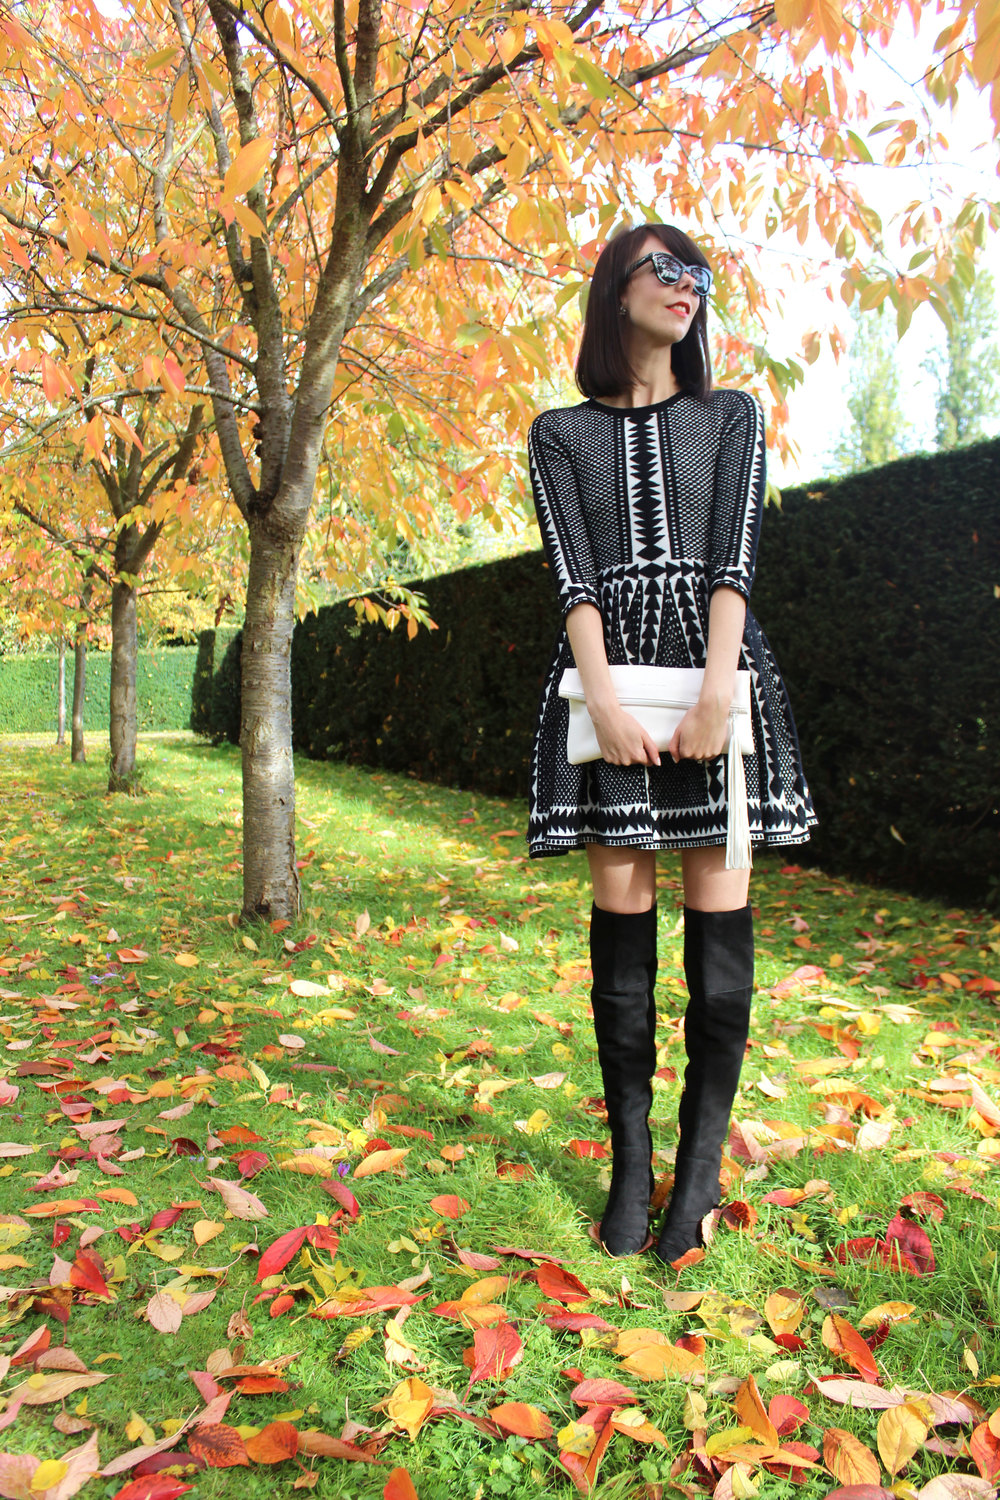 Suede over the knee boots and a cozy black and white sweater dress.